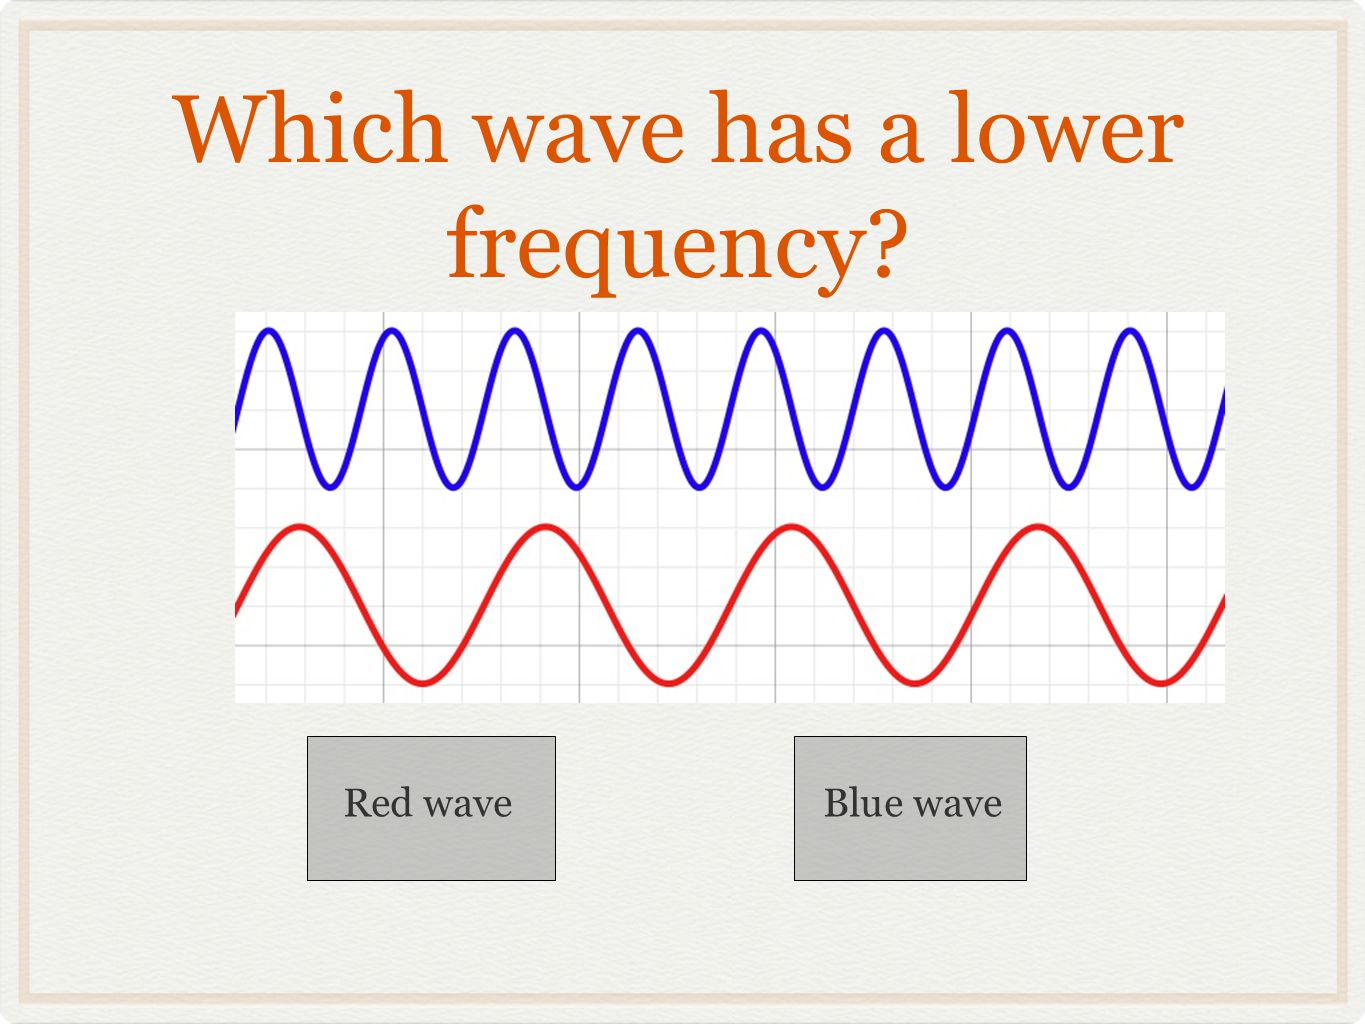 Which wave has a lower frequency